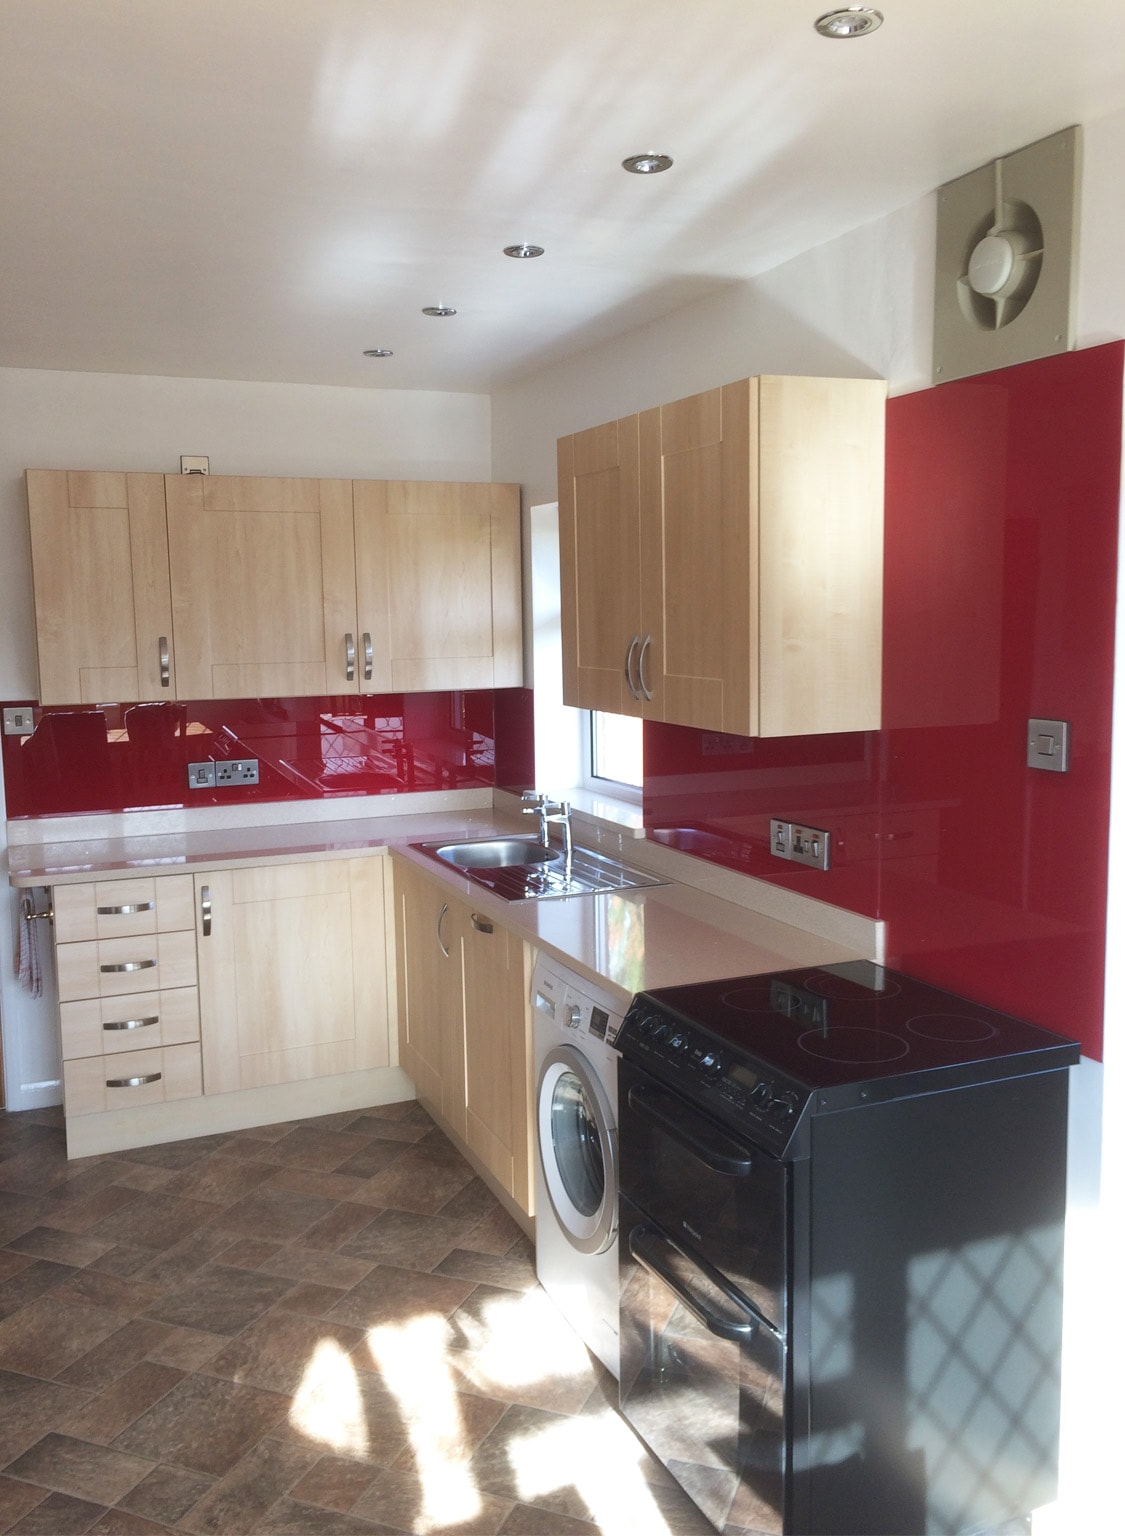 Kitchen Glass Splashback Fitted on marble wortop in Bordeaux Red